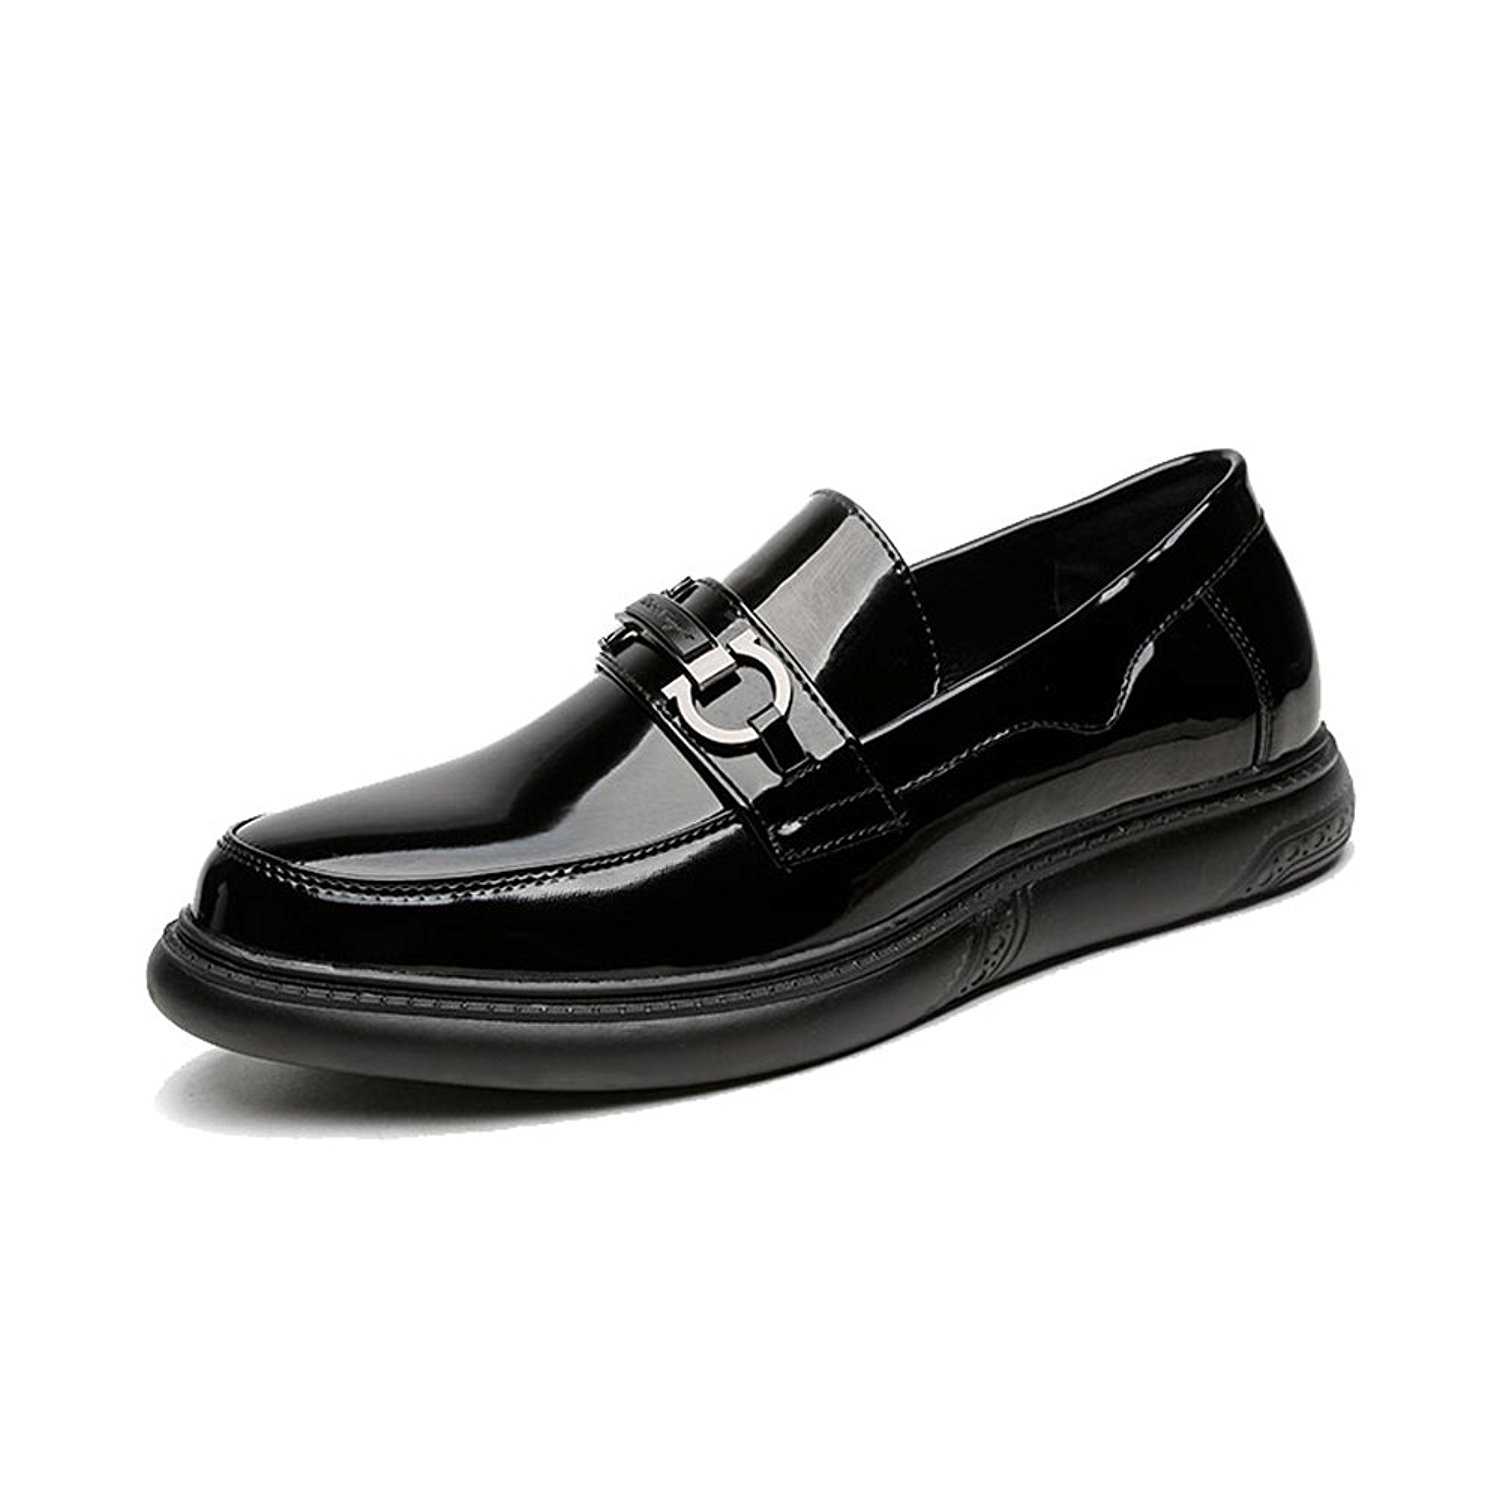 2018 Oxfords Shoes, Men's Slip-on Shoes Smooth PU Leather Upper Loafers Gentlemen Business Oxfords